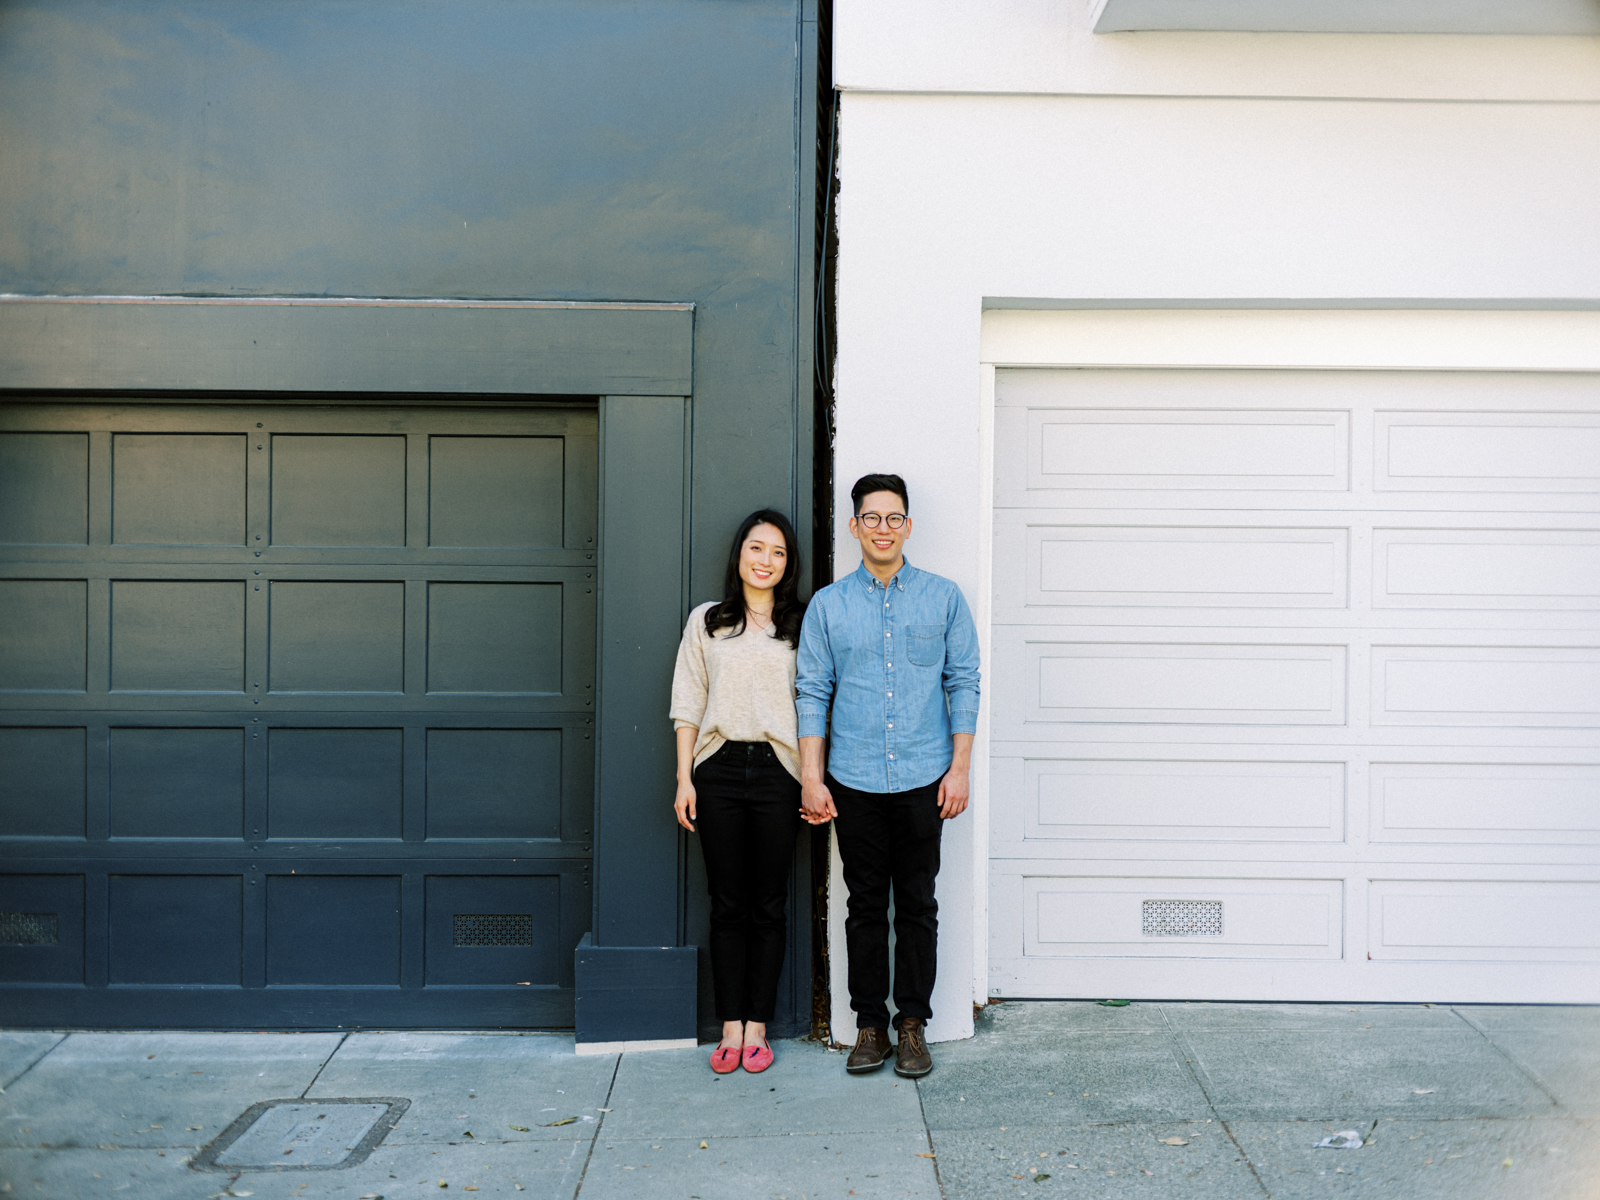 San Francisco Engagement Bay Area Wedding Photographer (11 of 23).jpg